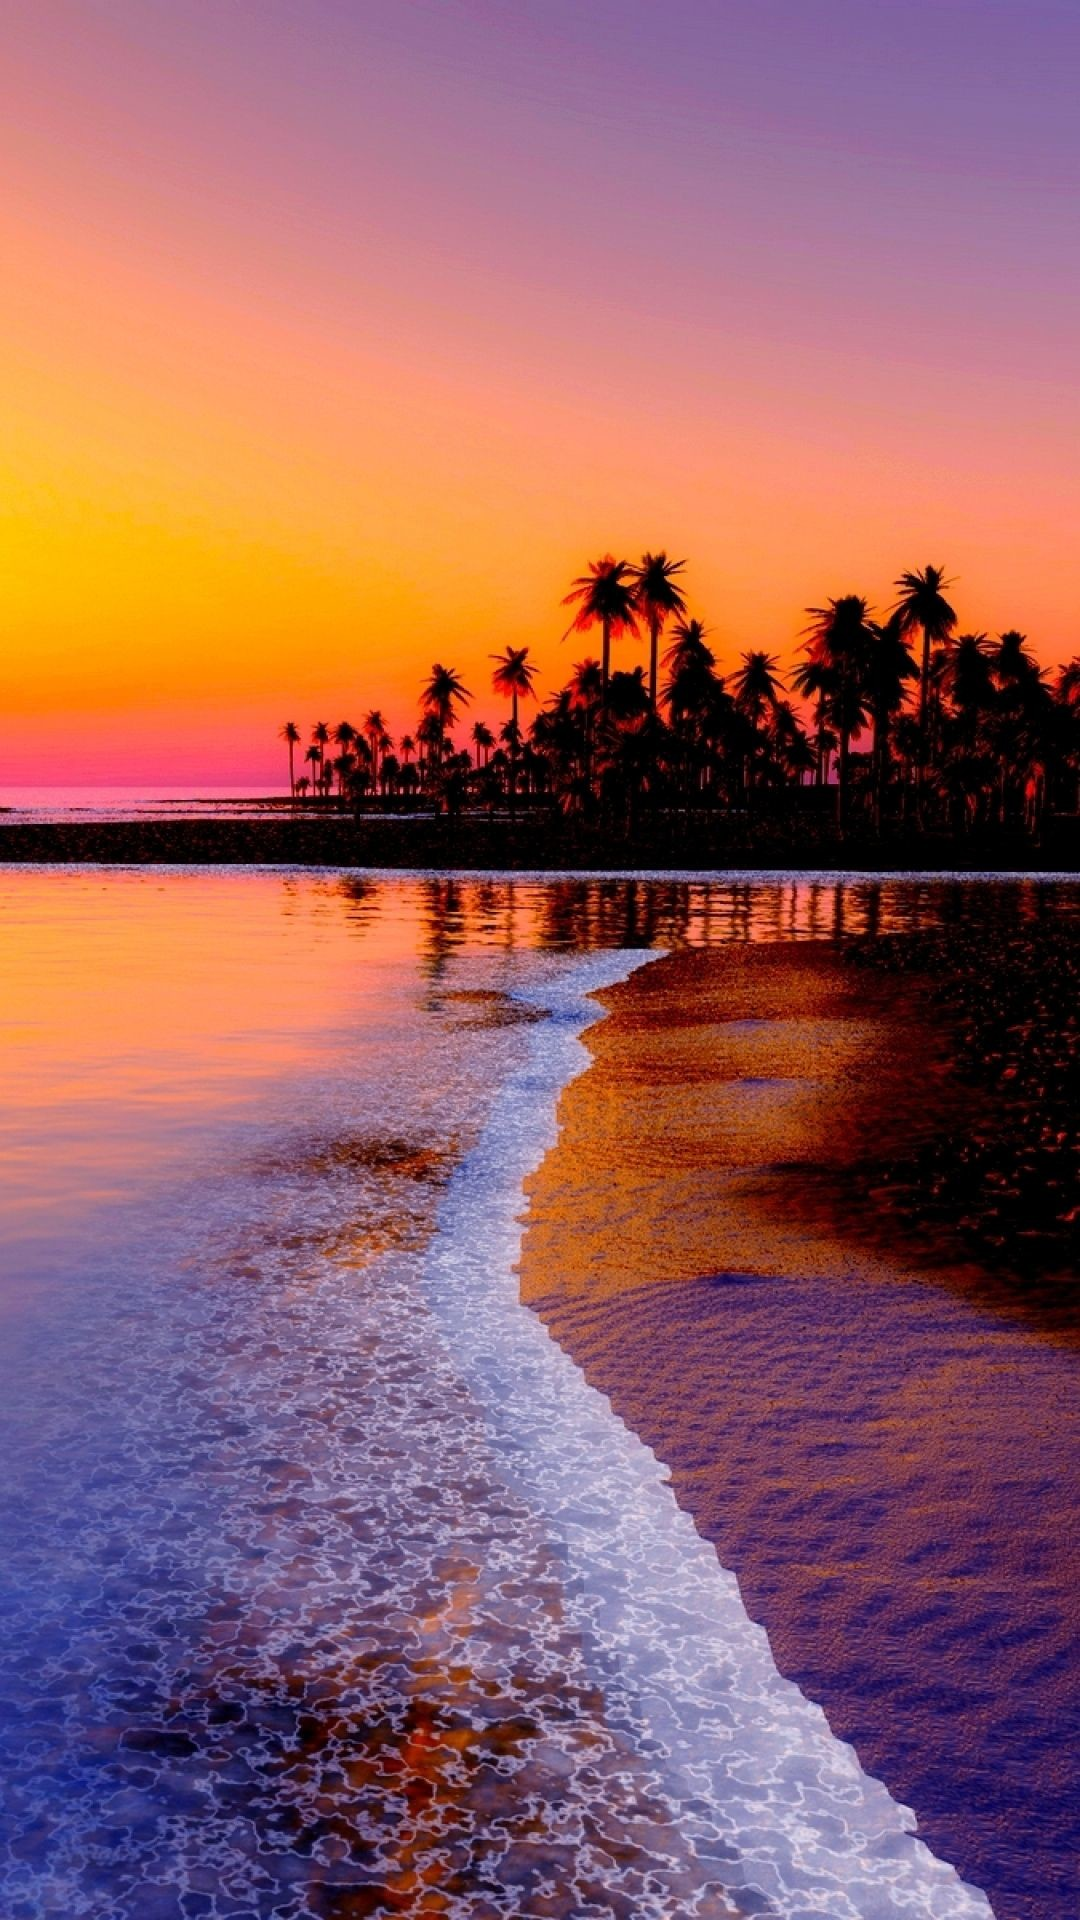 Res: 1080x1920, Beach tropics sea sunset - Tap to see more #sunset wallpapers - @mobile9